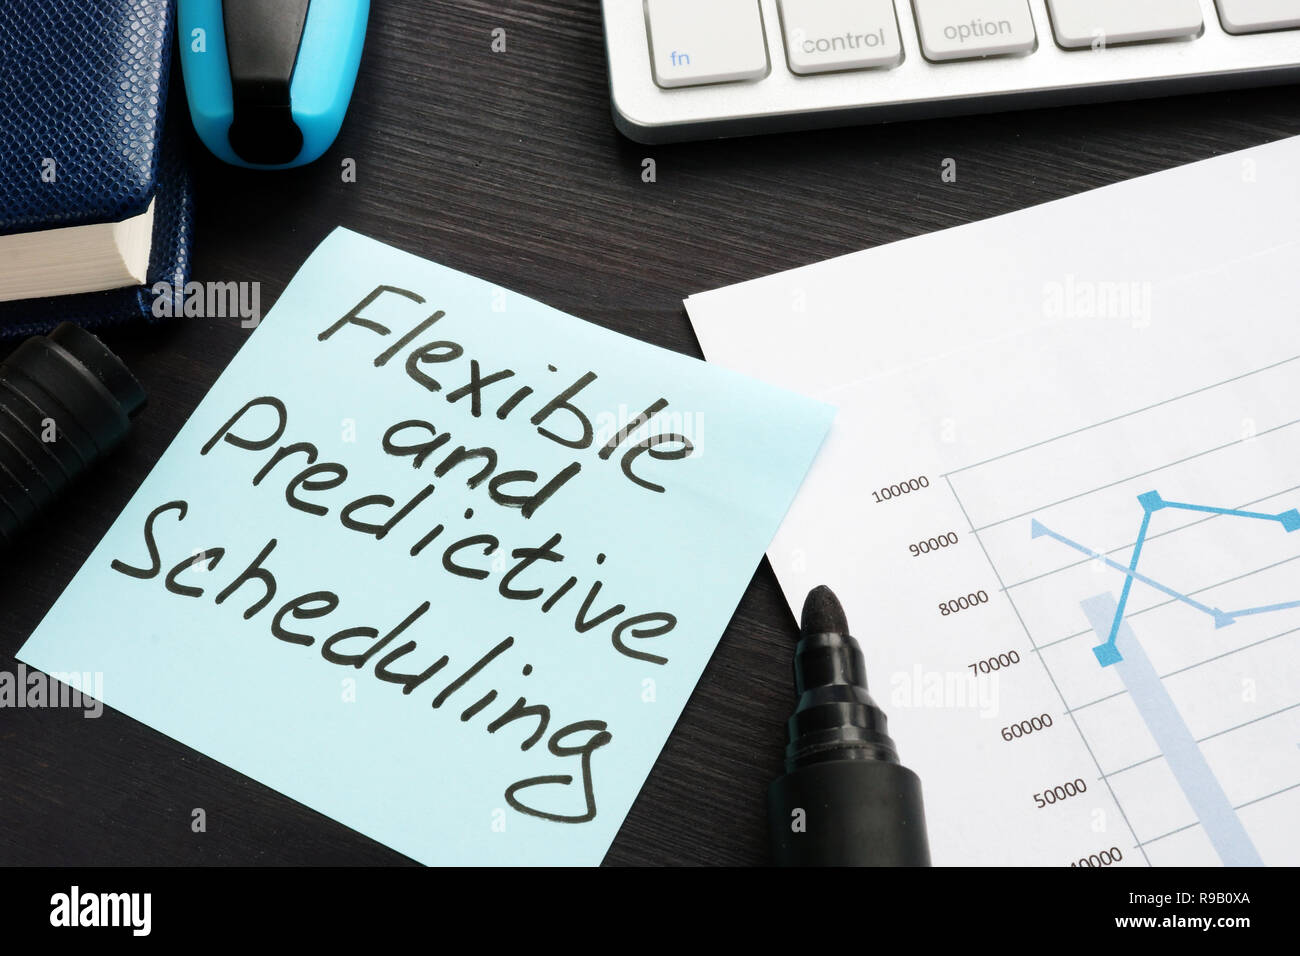 Flexible and Predictive Scheduling written on a memo stick. - Stock Image